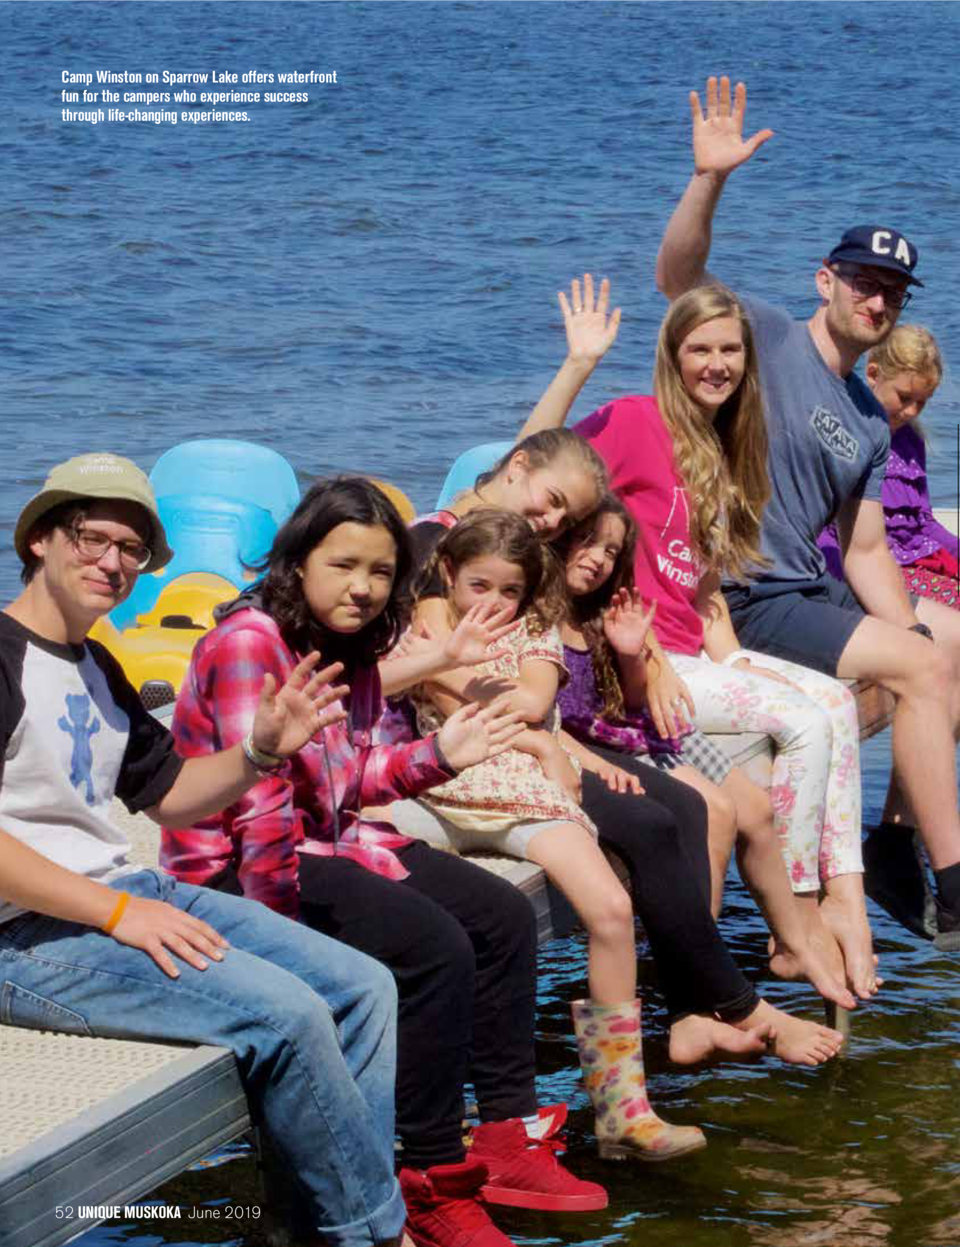 Camp Winston on Sparrow Lake offers waterfront fun for the campers who experience success through life-changing experience...